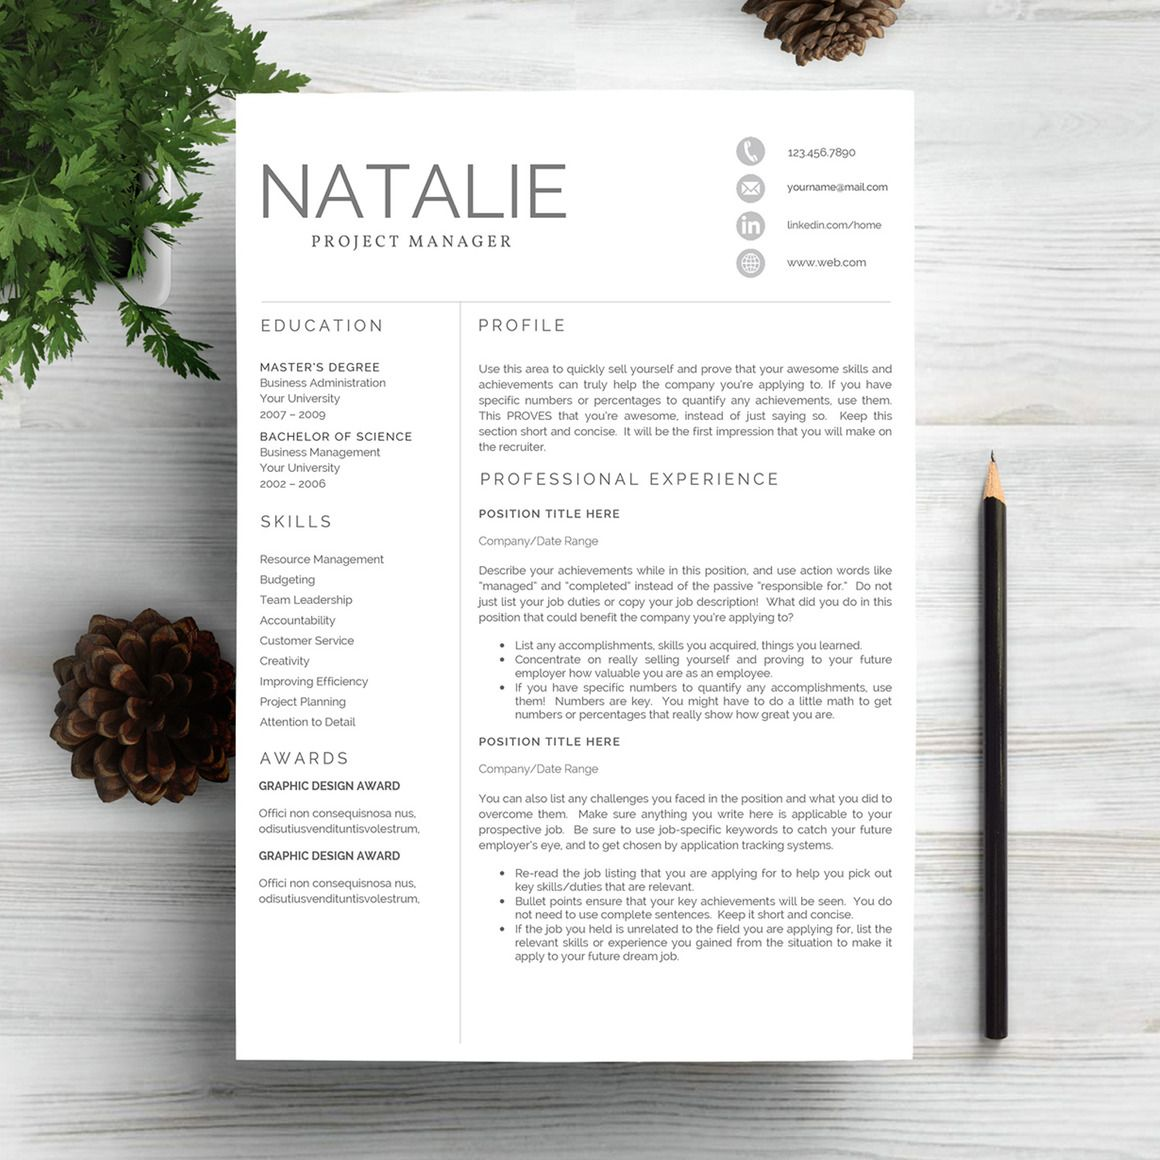 Professional Resume Template CV - Resumes | Graphic Design and ...